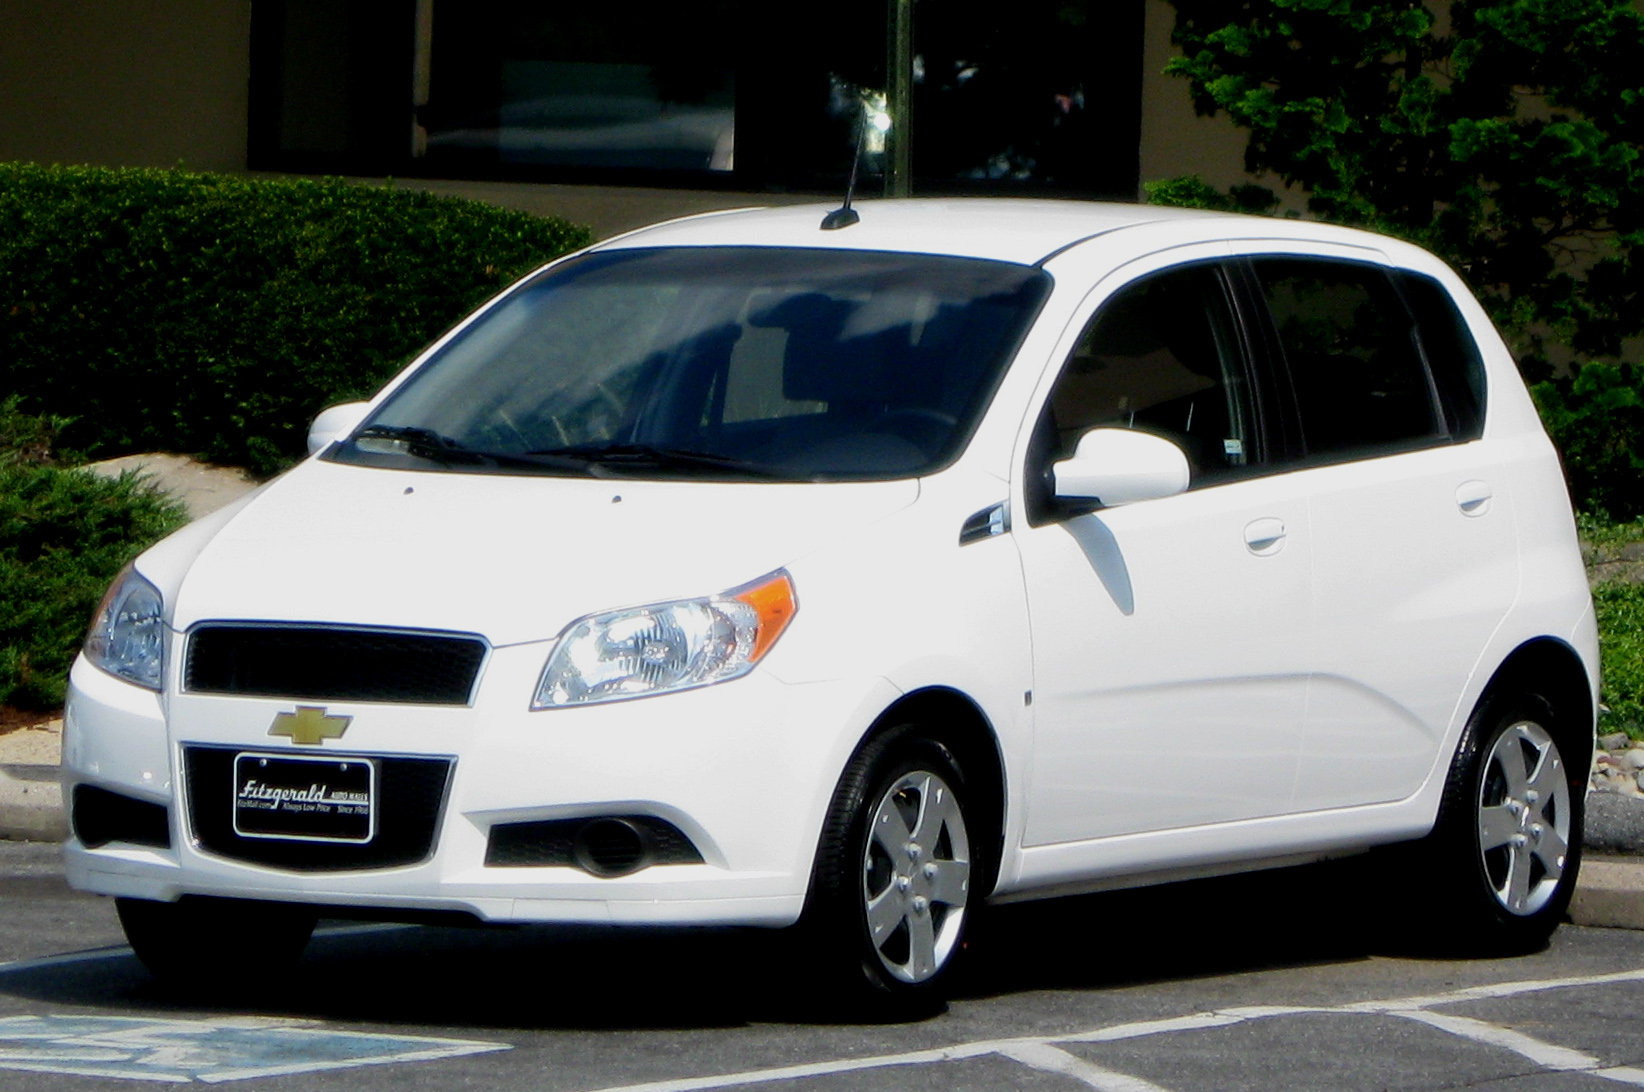 2009 Chevrolet Aveo Resolutions Wallpapers Download